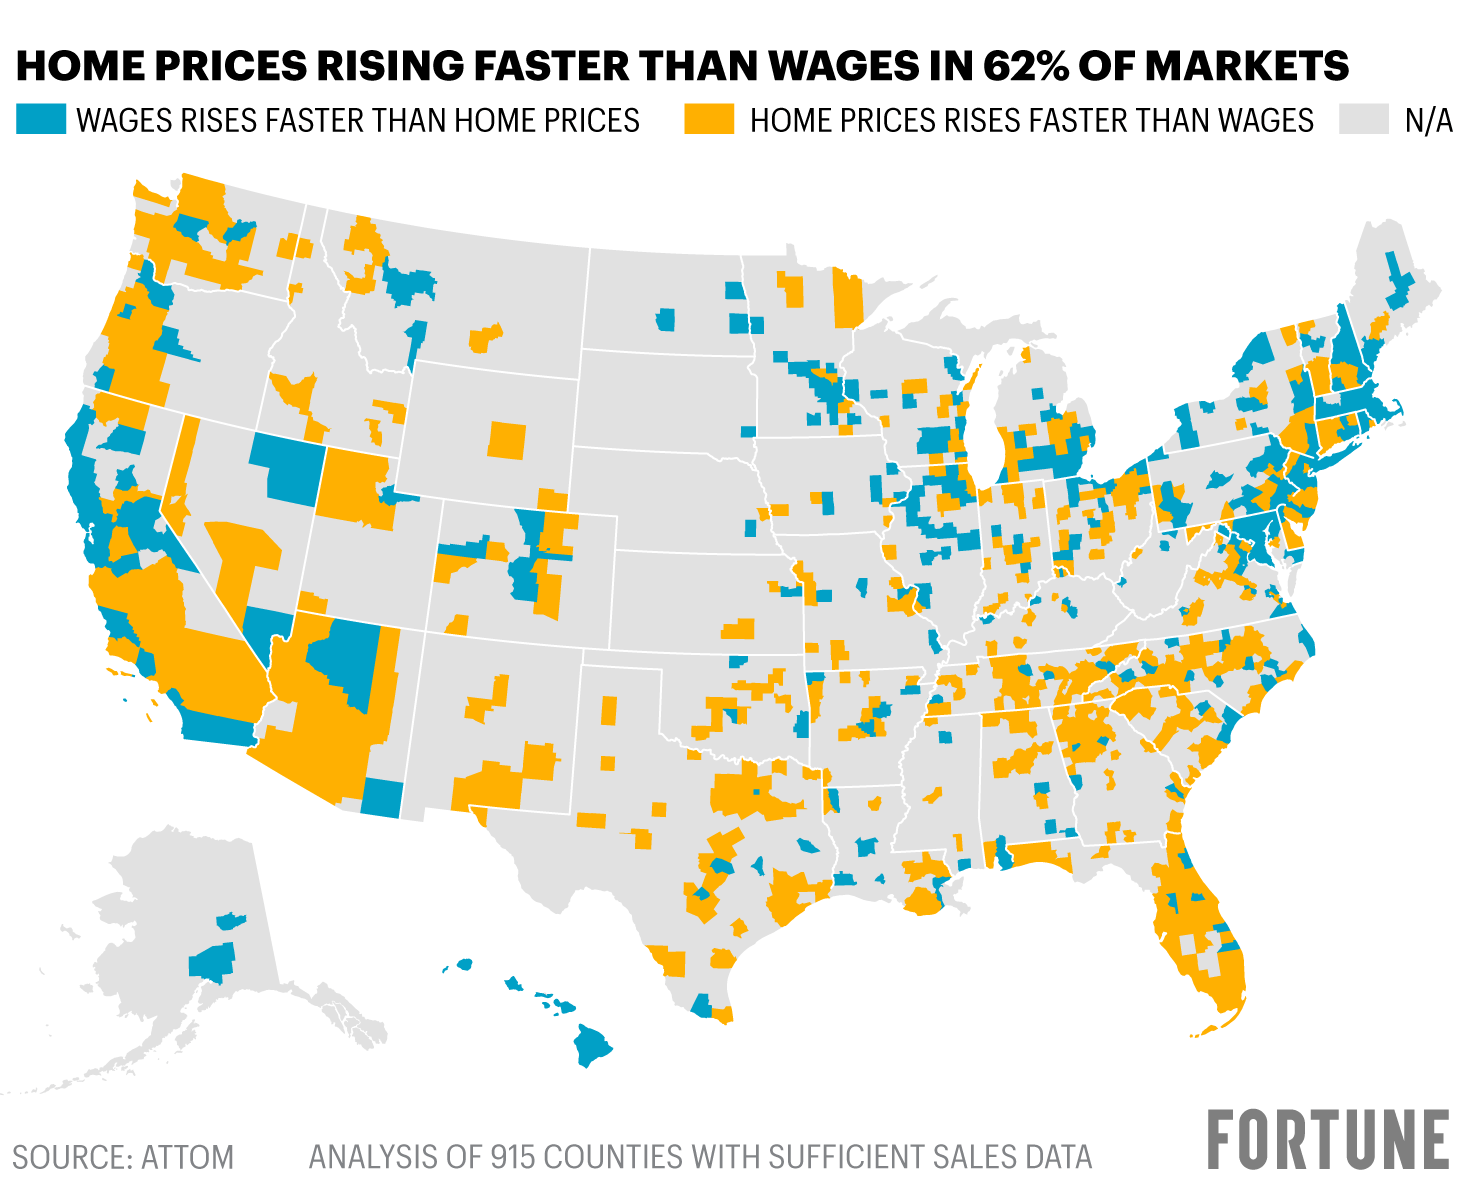 Home prices are rising faster than wages - Fortune